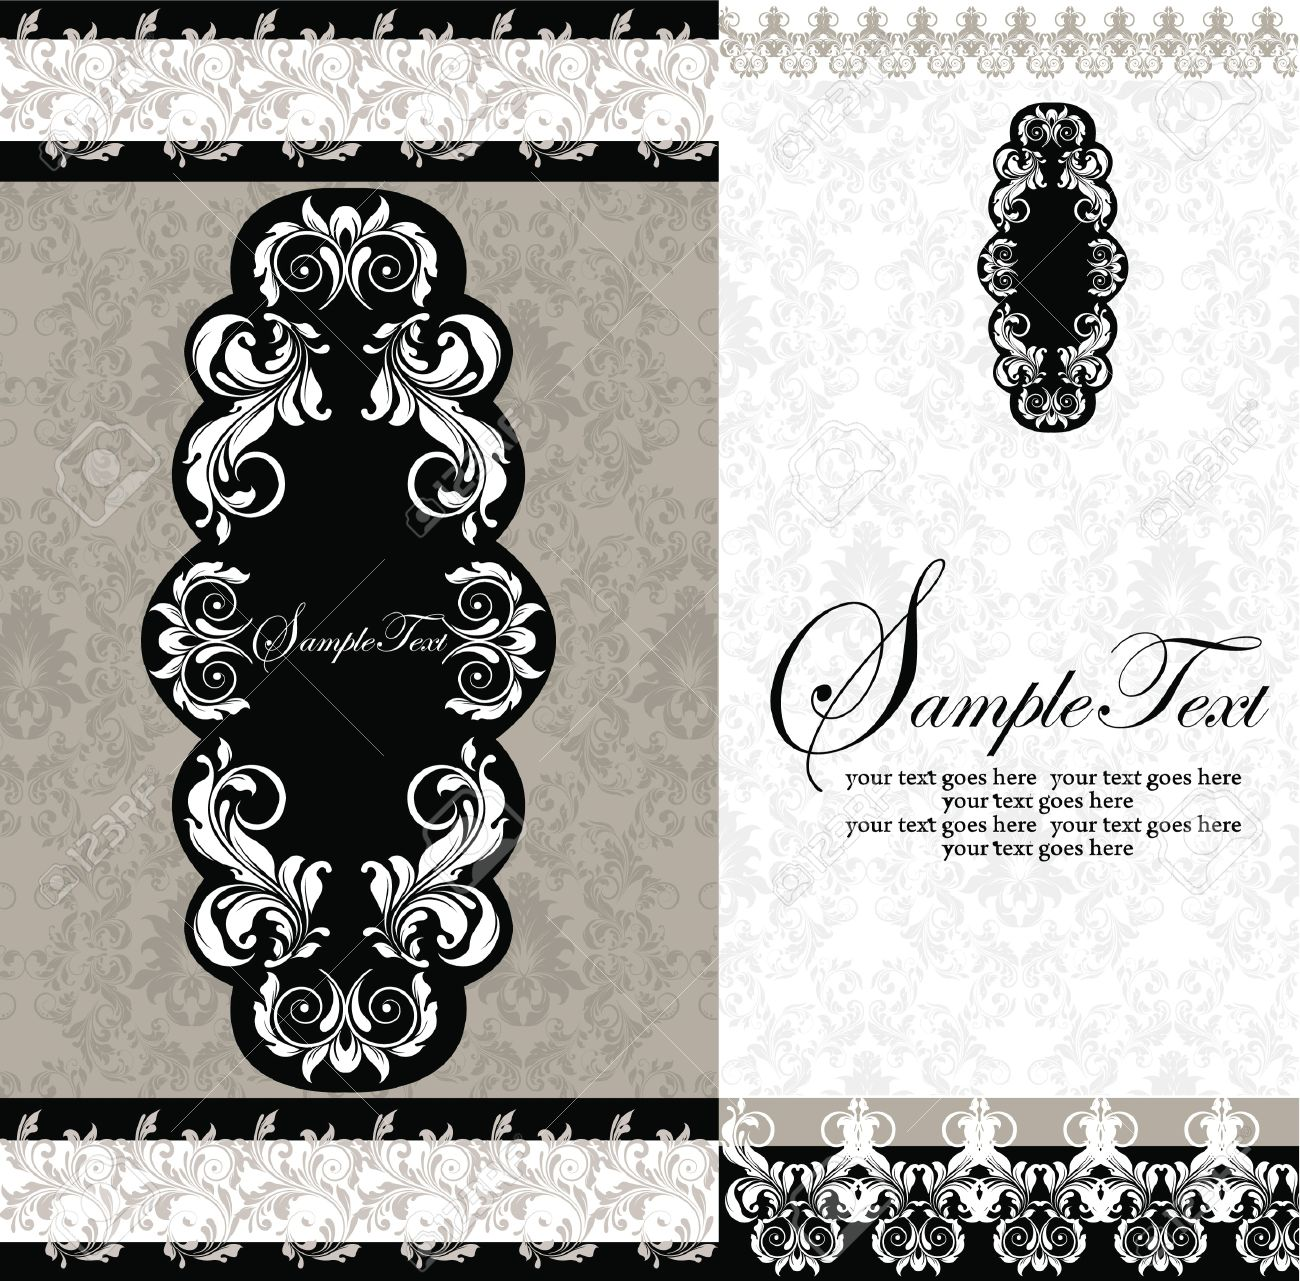 Black and white damask wedding invitations royalty free cliparts black and white damask wedding invitations stock vector 15847711 filmwisefo